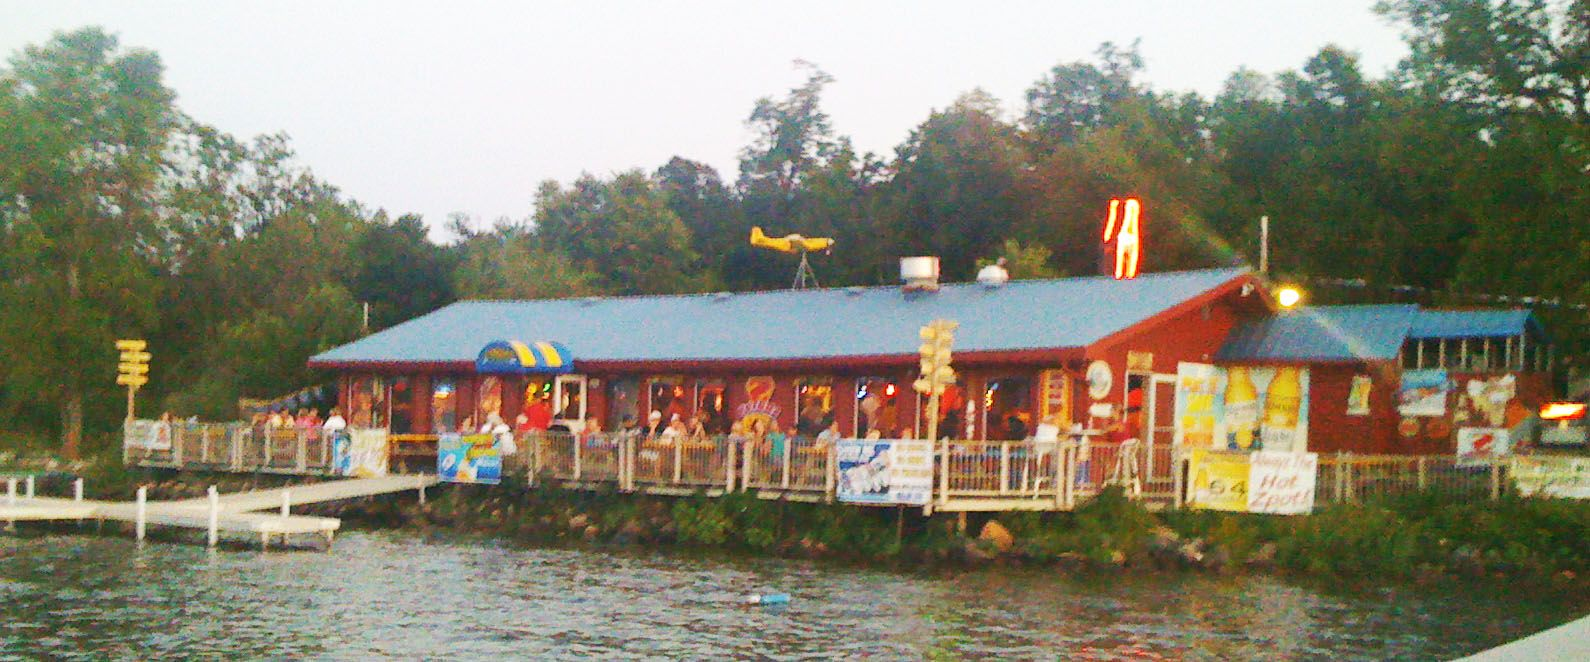 Zorbaz On Otter Tail Lake Mexican Pizza Restaurant And Bar With